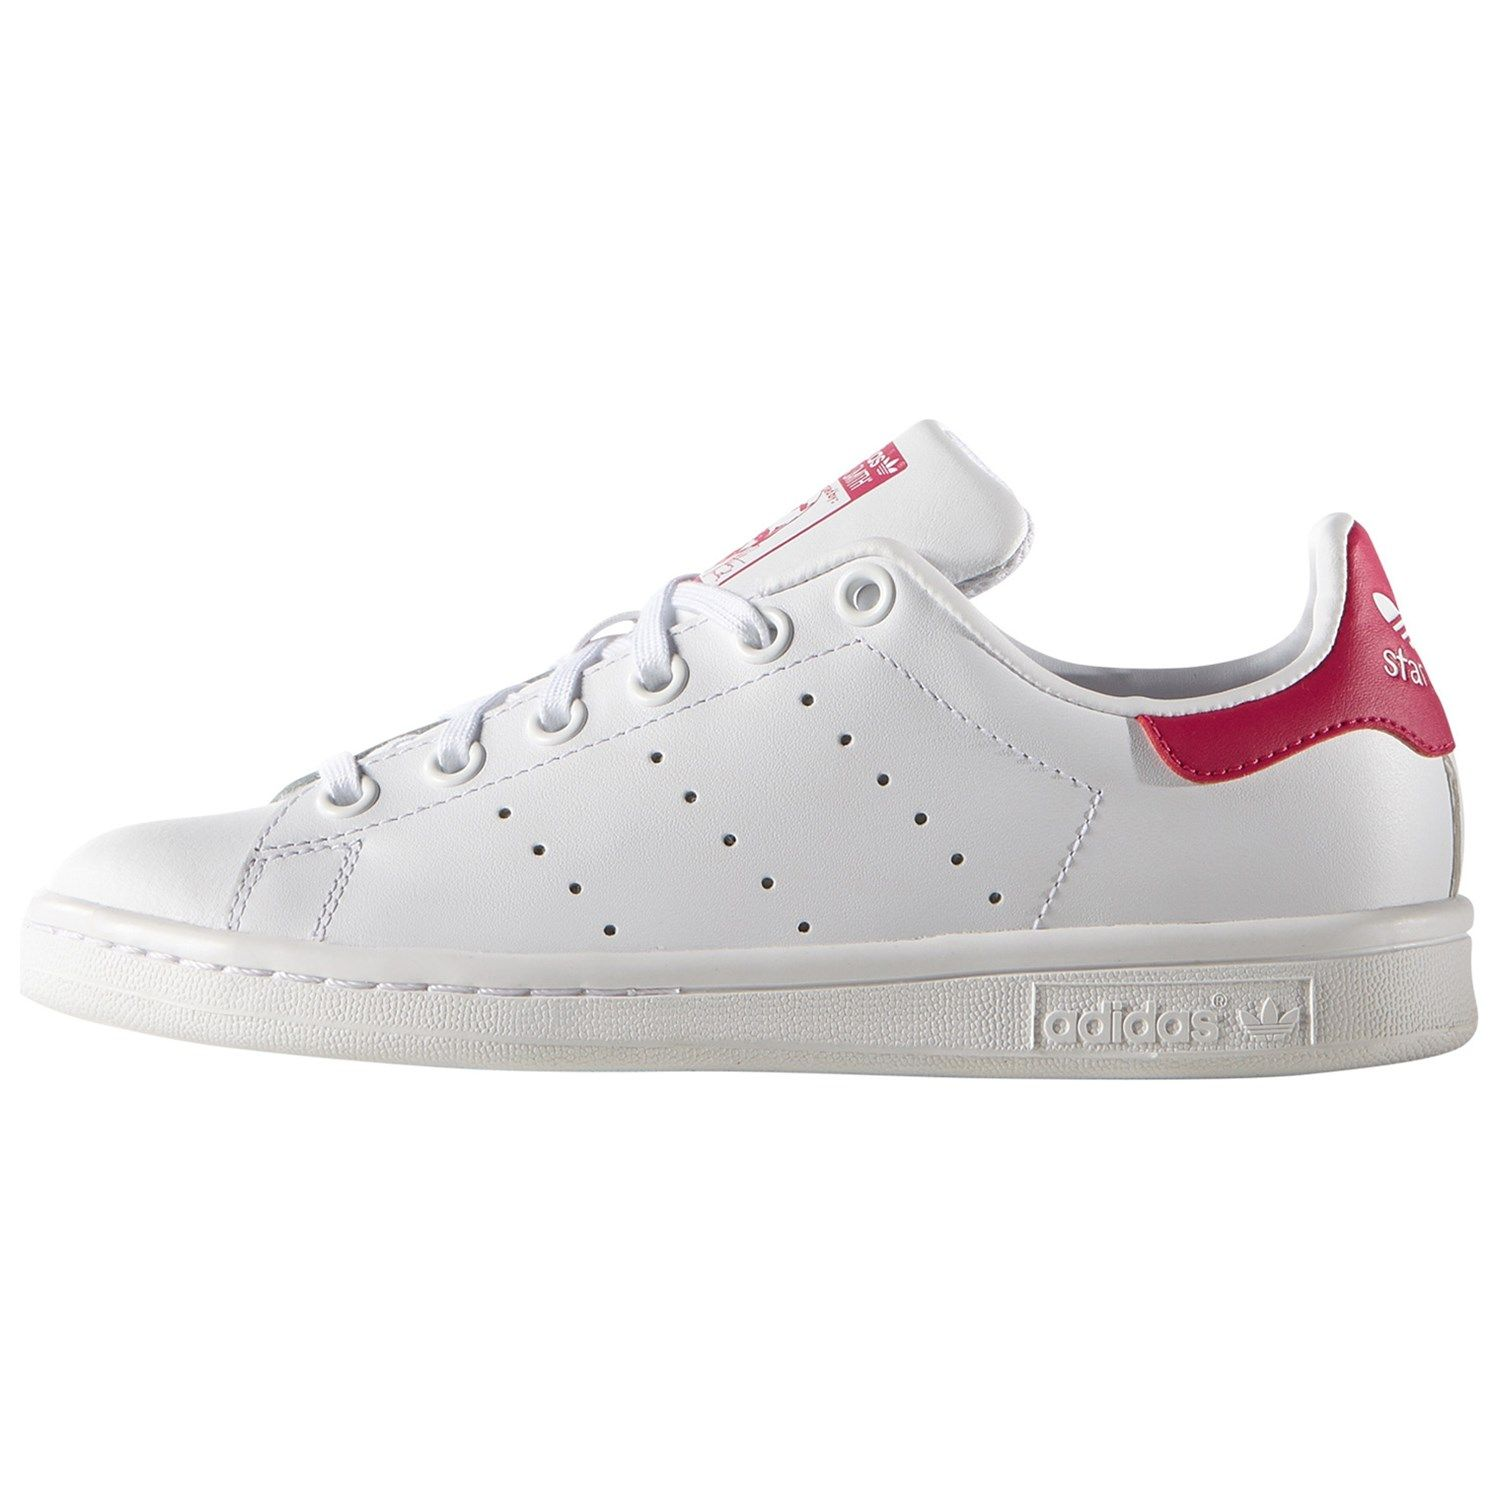 Adidas Stan Smith · Casual · Casual Clothes · Παιδικό casual παπούτσι. a8a9971ffb7